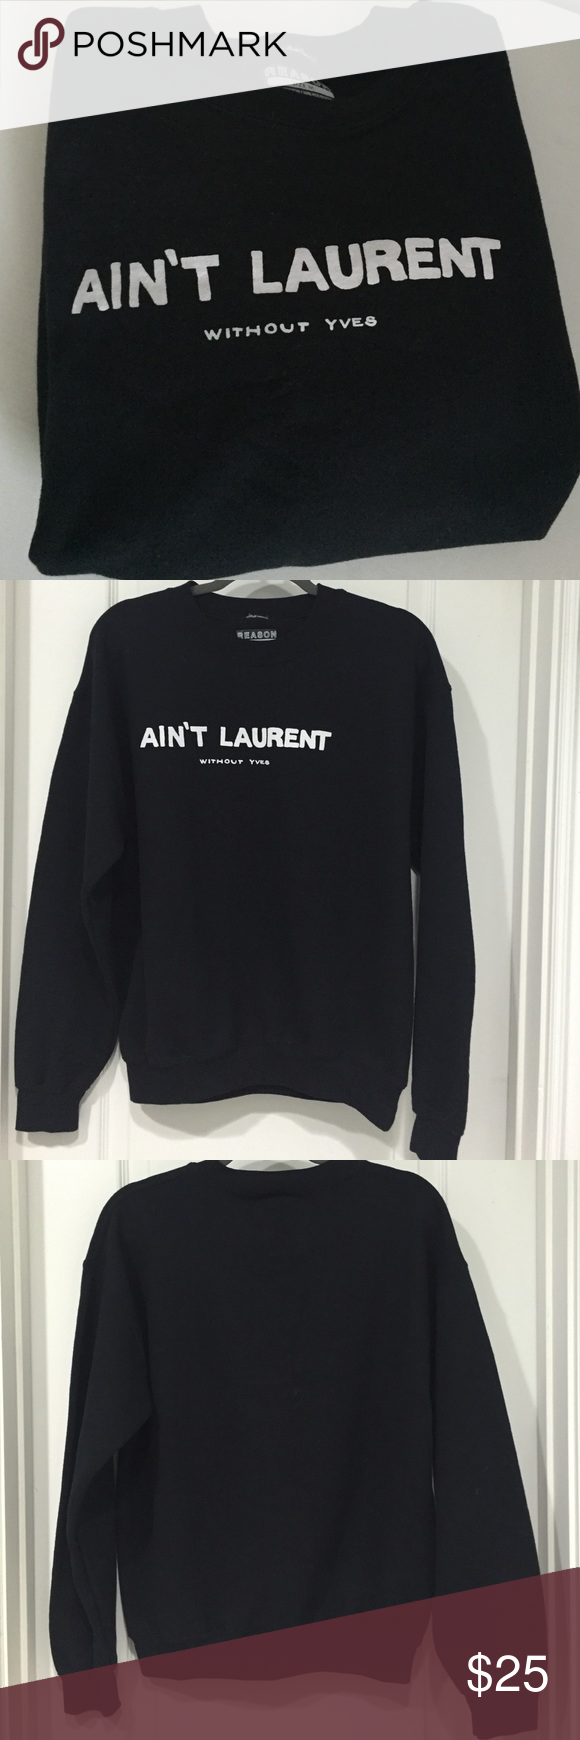 Ain T Laurent Without Yves Graphic Sweatshirt Graphic Sweatshirt Sweatshirts Sweatshirts Hoodie [ 1740 x 580 Pixel ]